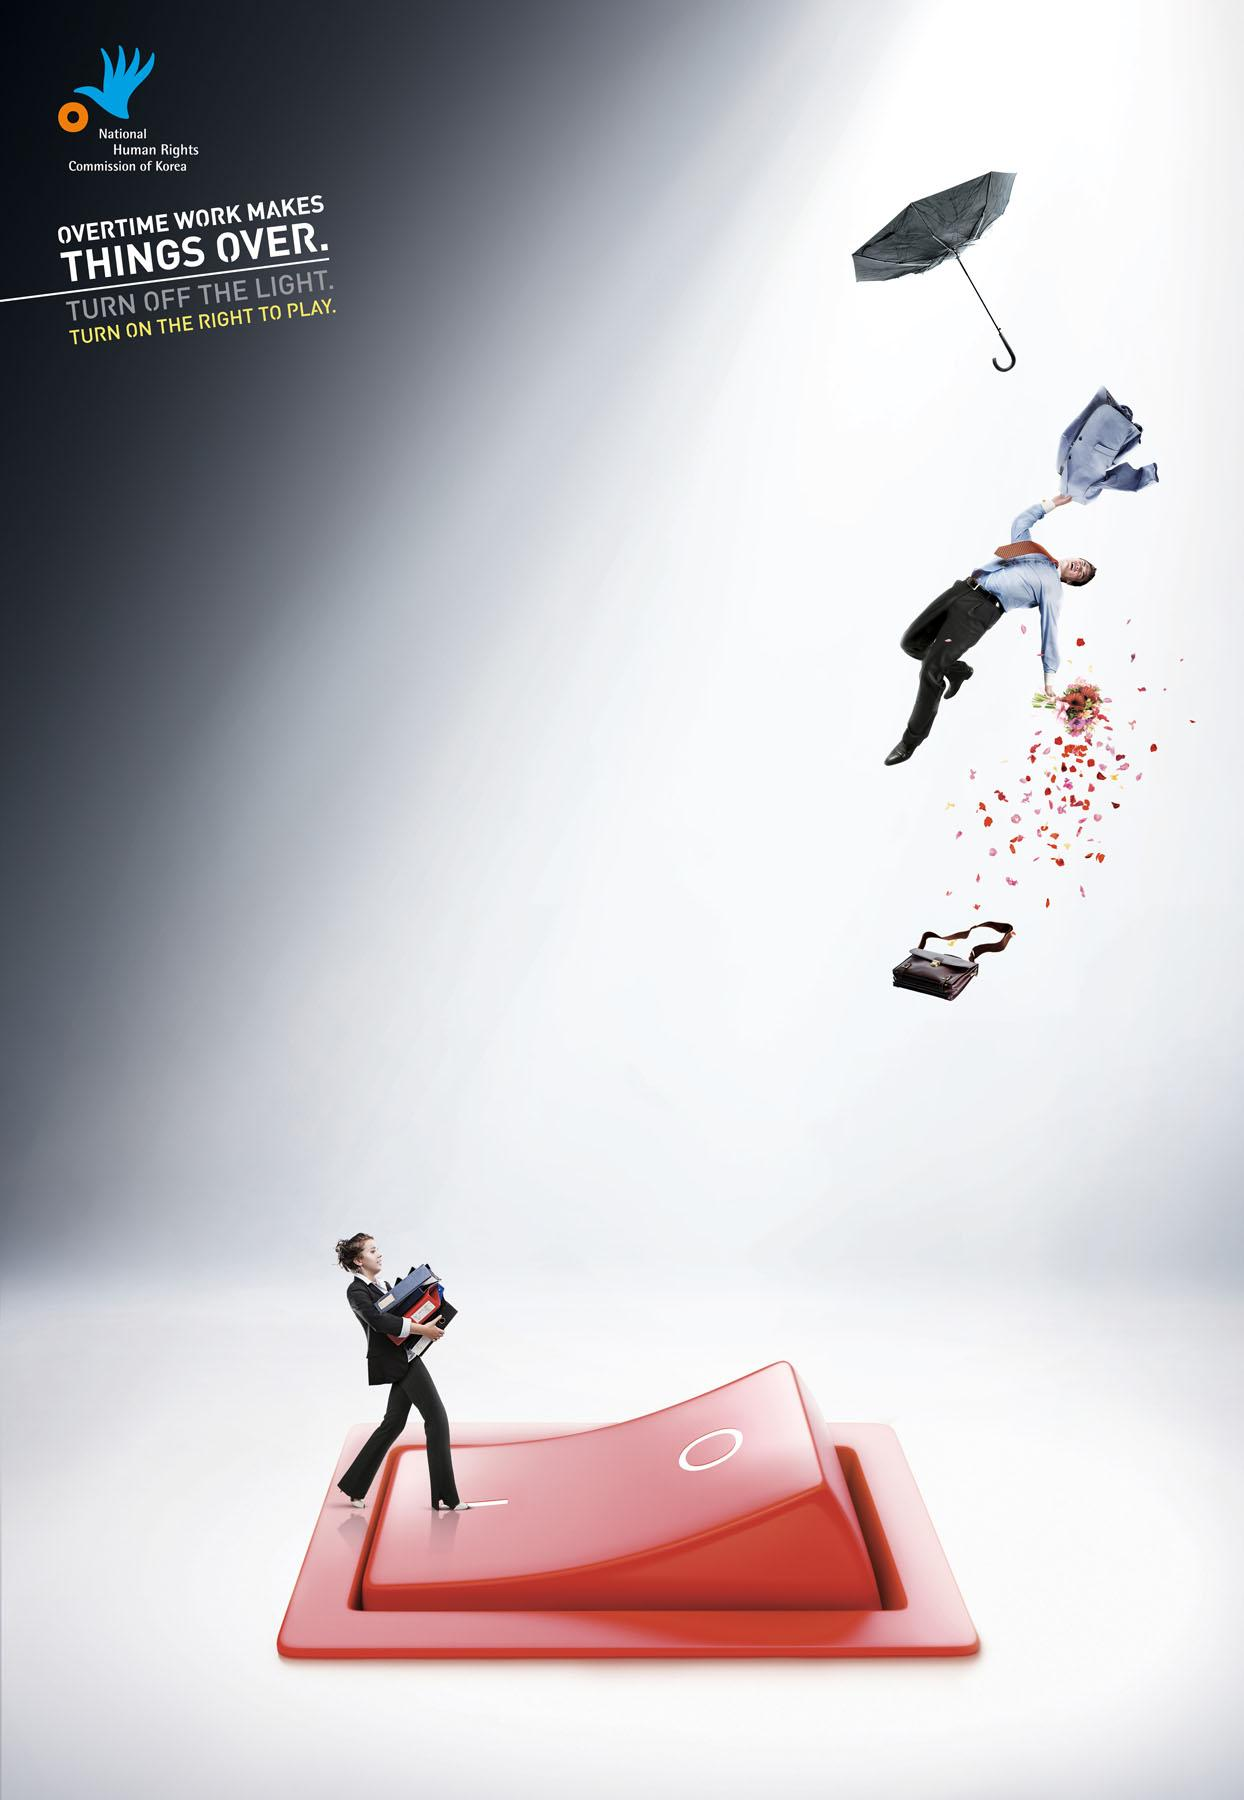 National Human Rights Commission of Korea Print Ad -  Overtime, 2